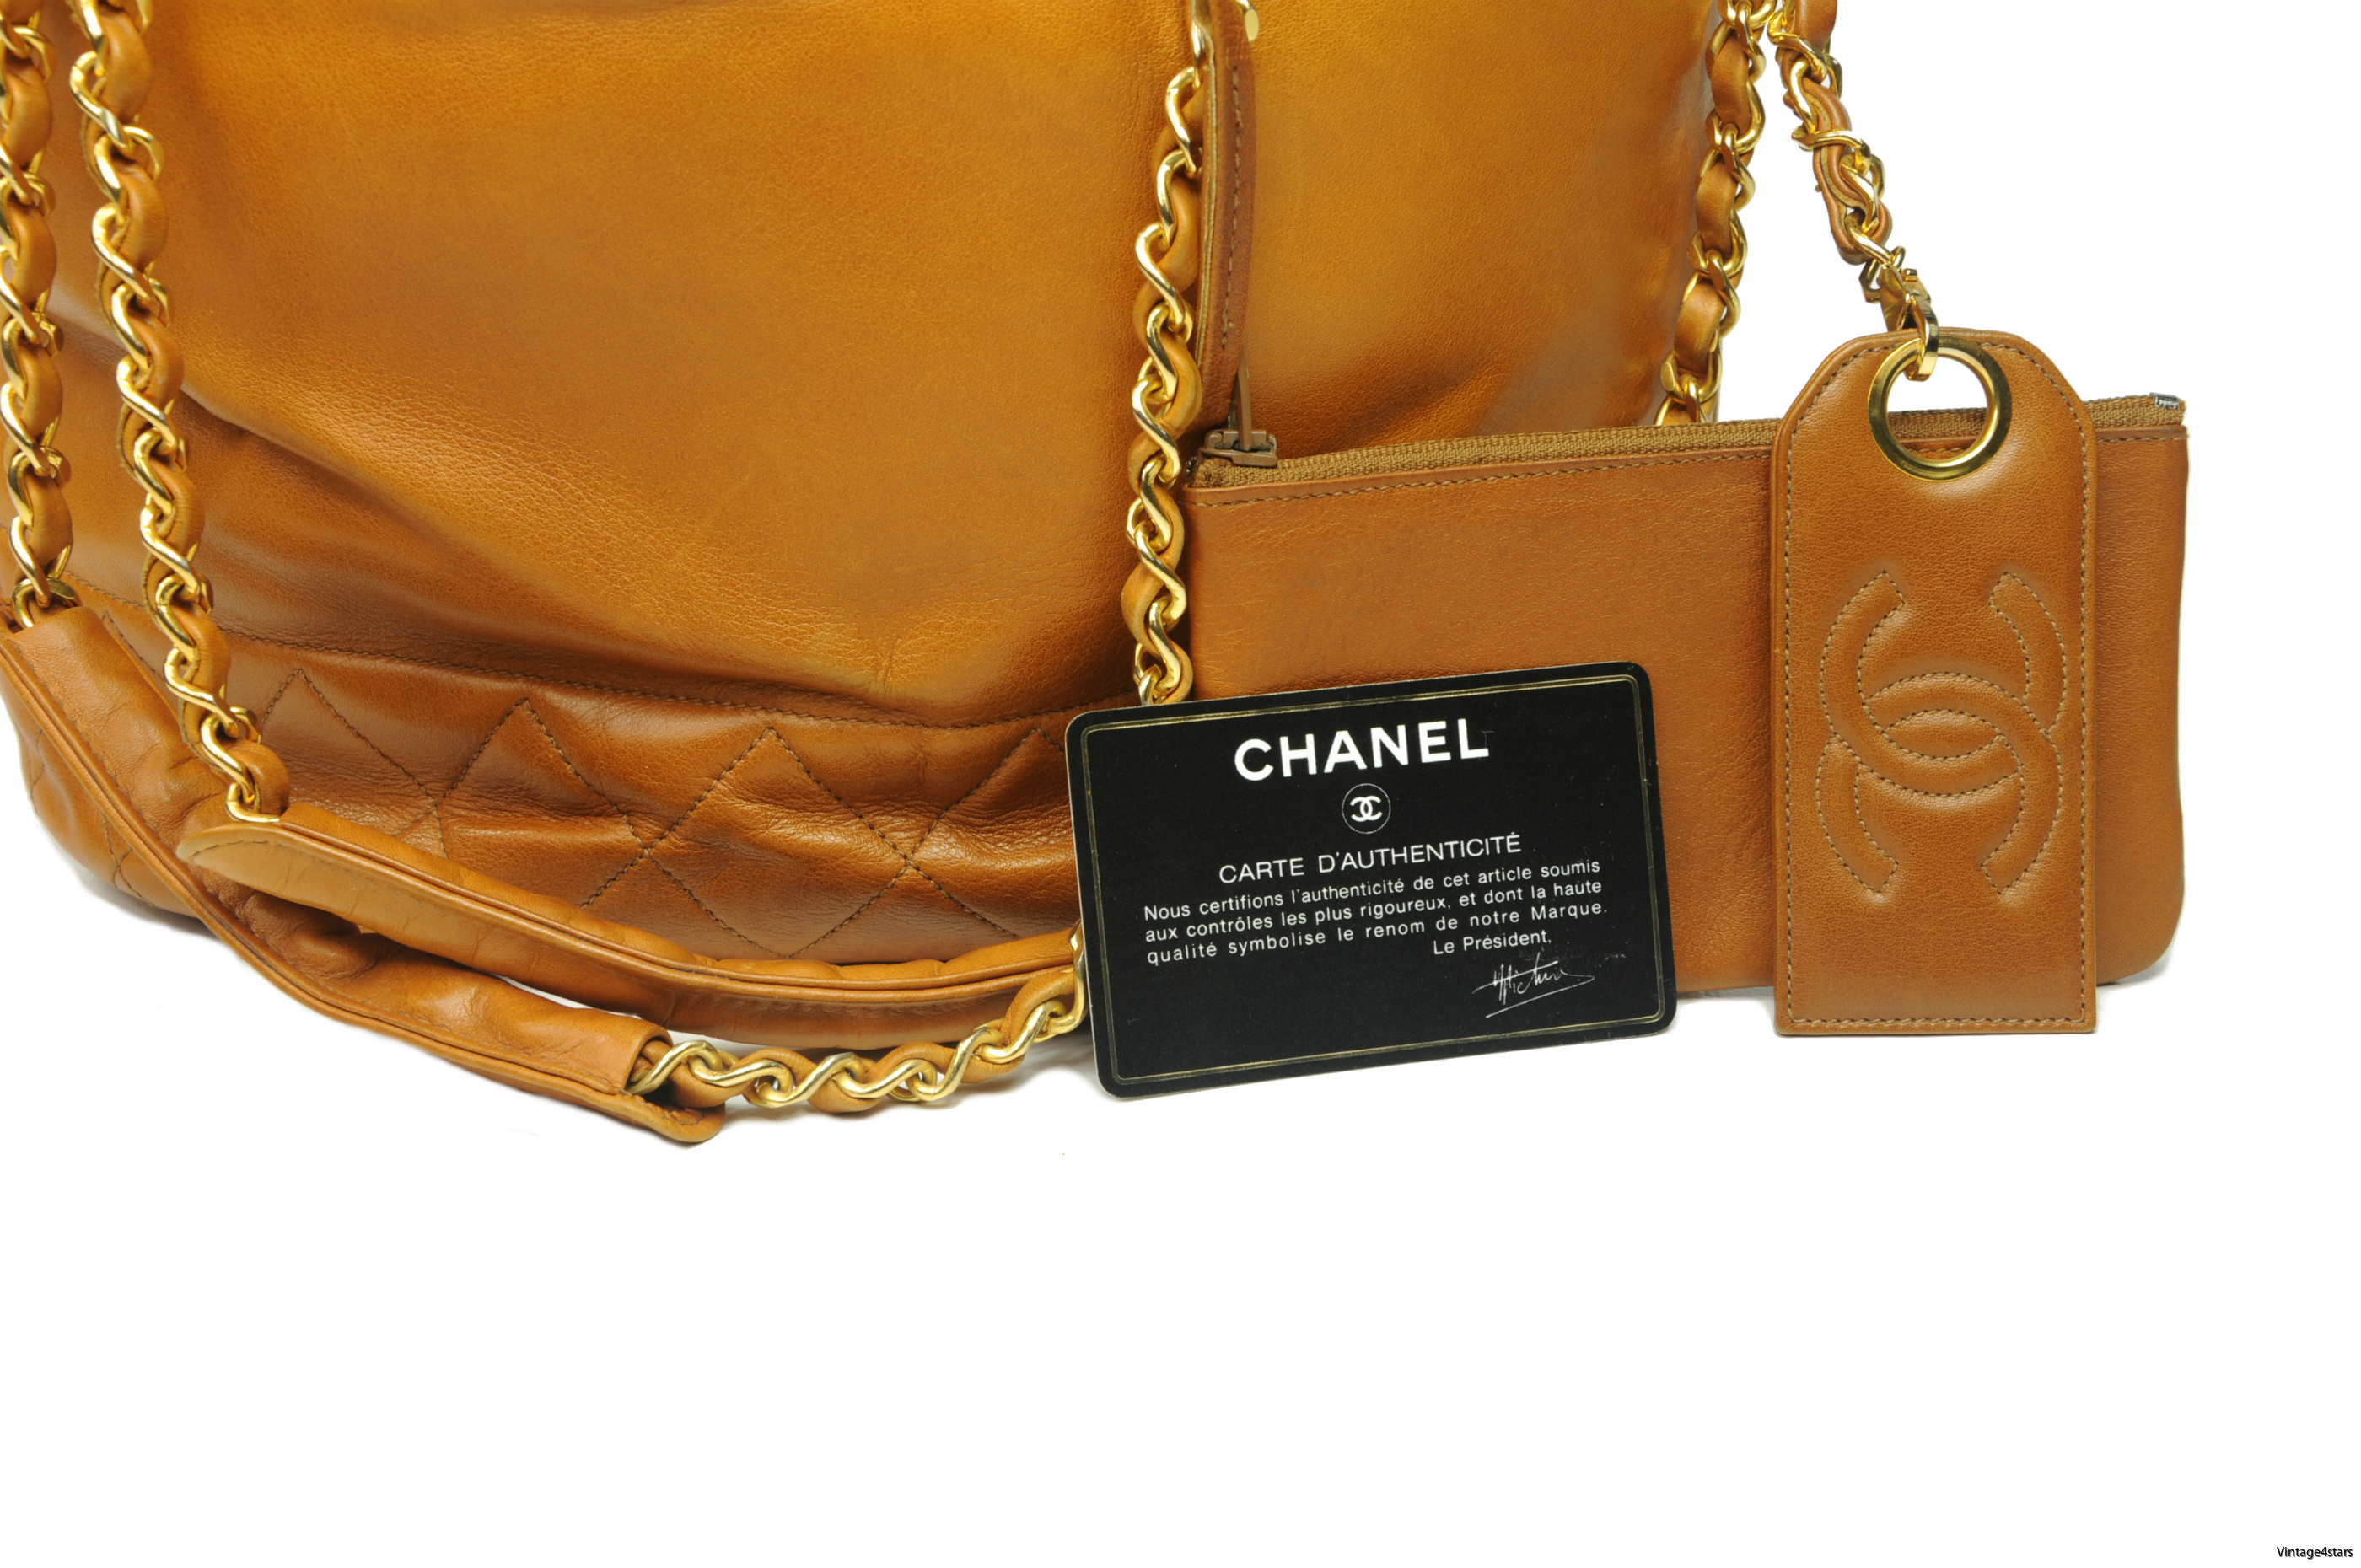 CHANEL Drawstring Shoulder bag 6